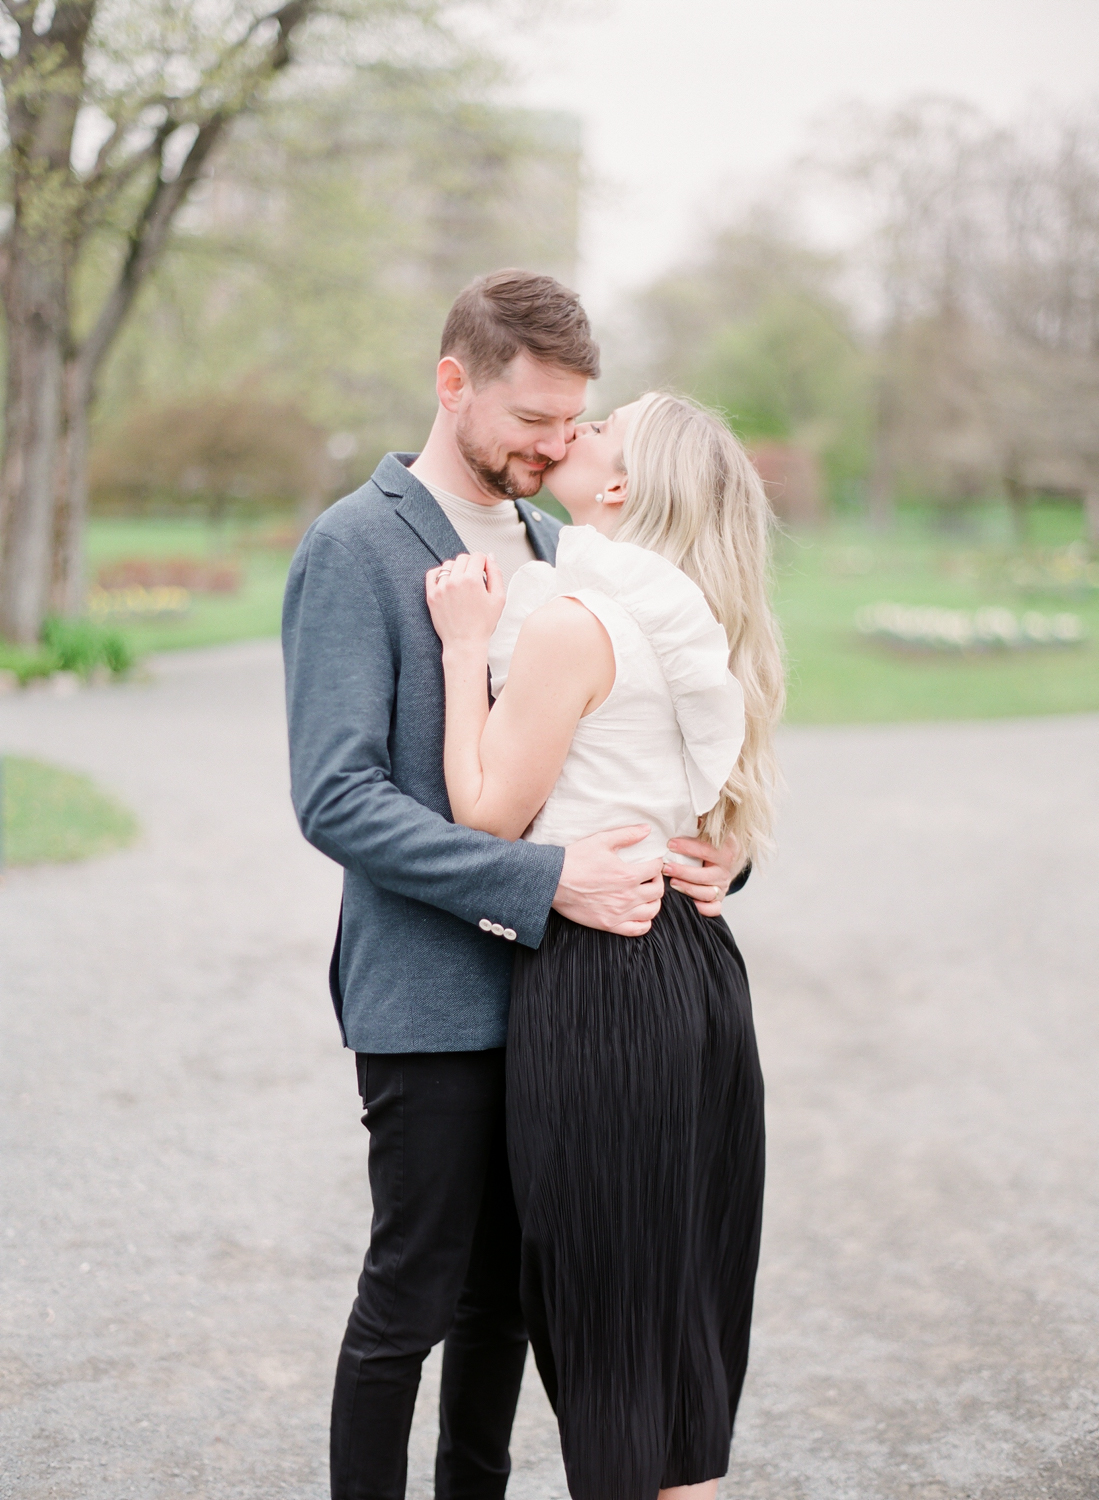 Jacqueline Anne Photography - Naphtali and Matt-57.jpg